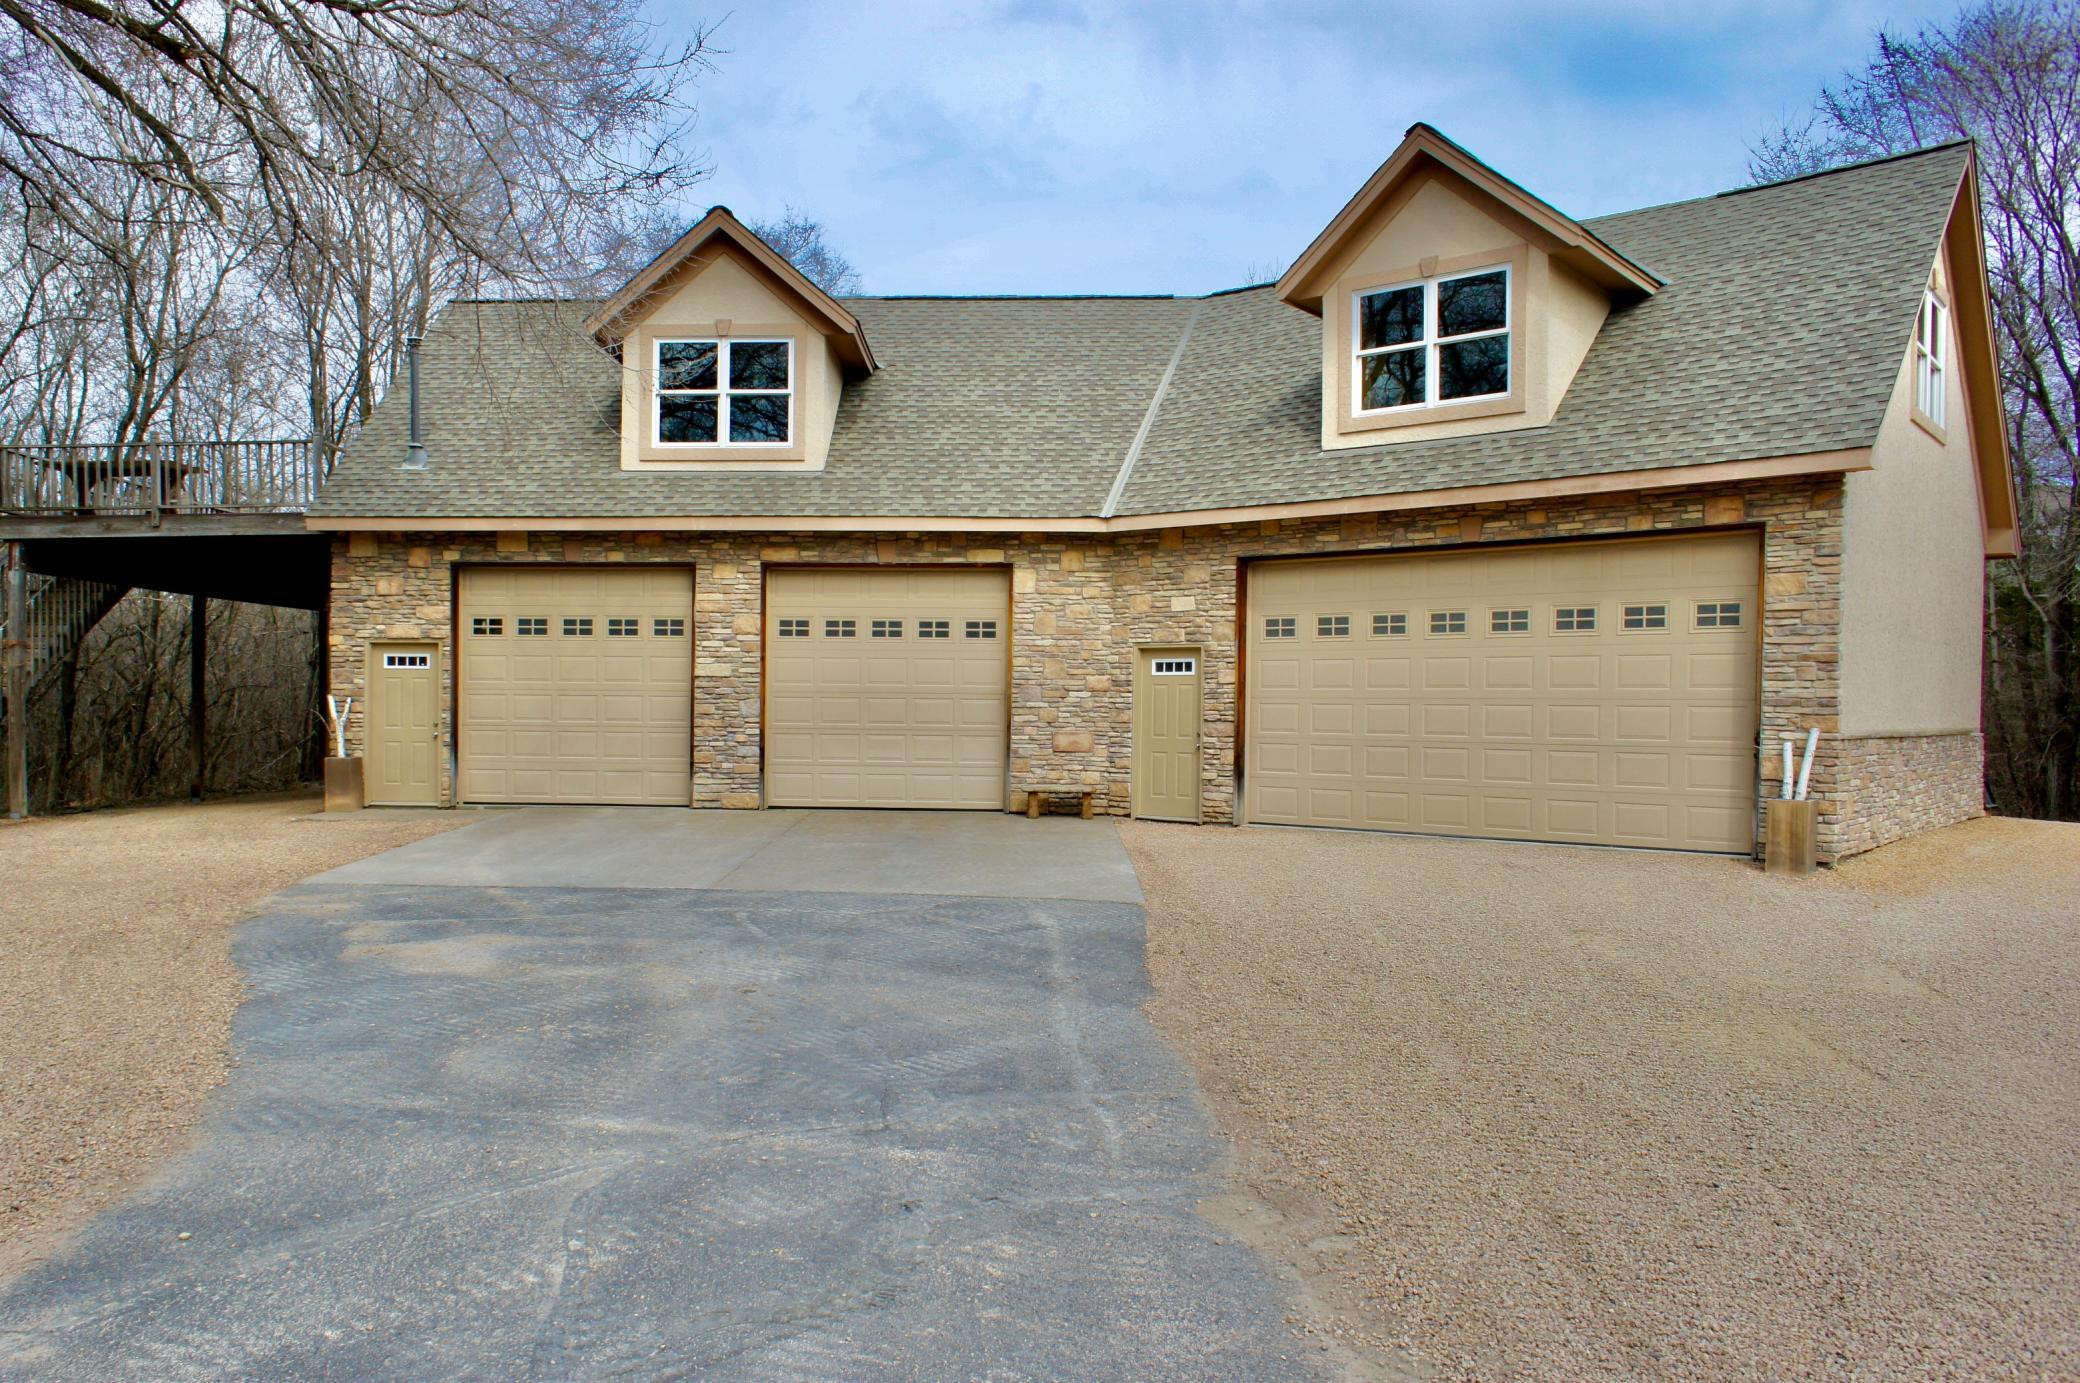 The Garage Mahal that will be the envy of all your friends & family 2000 square feet on the main level. Each of the overhead doors are 10' tall! See the 15'x28' carport w/deck above and there's another rear covered storage as well.